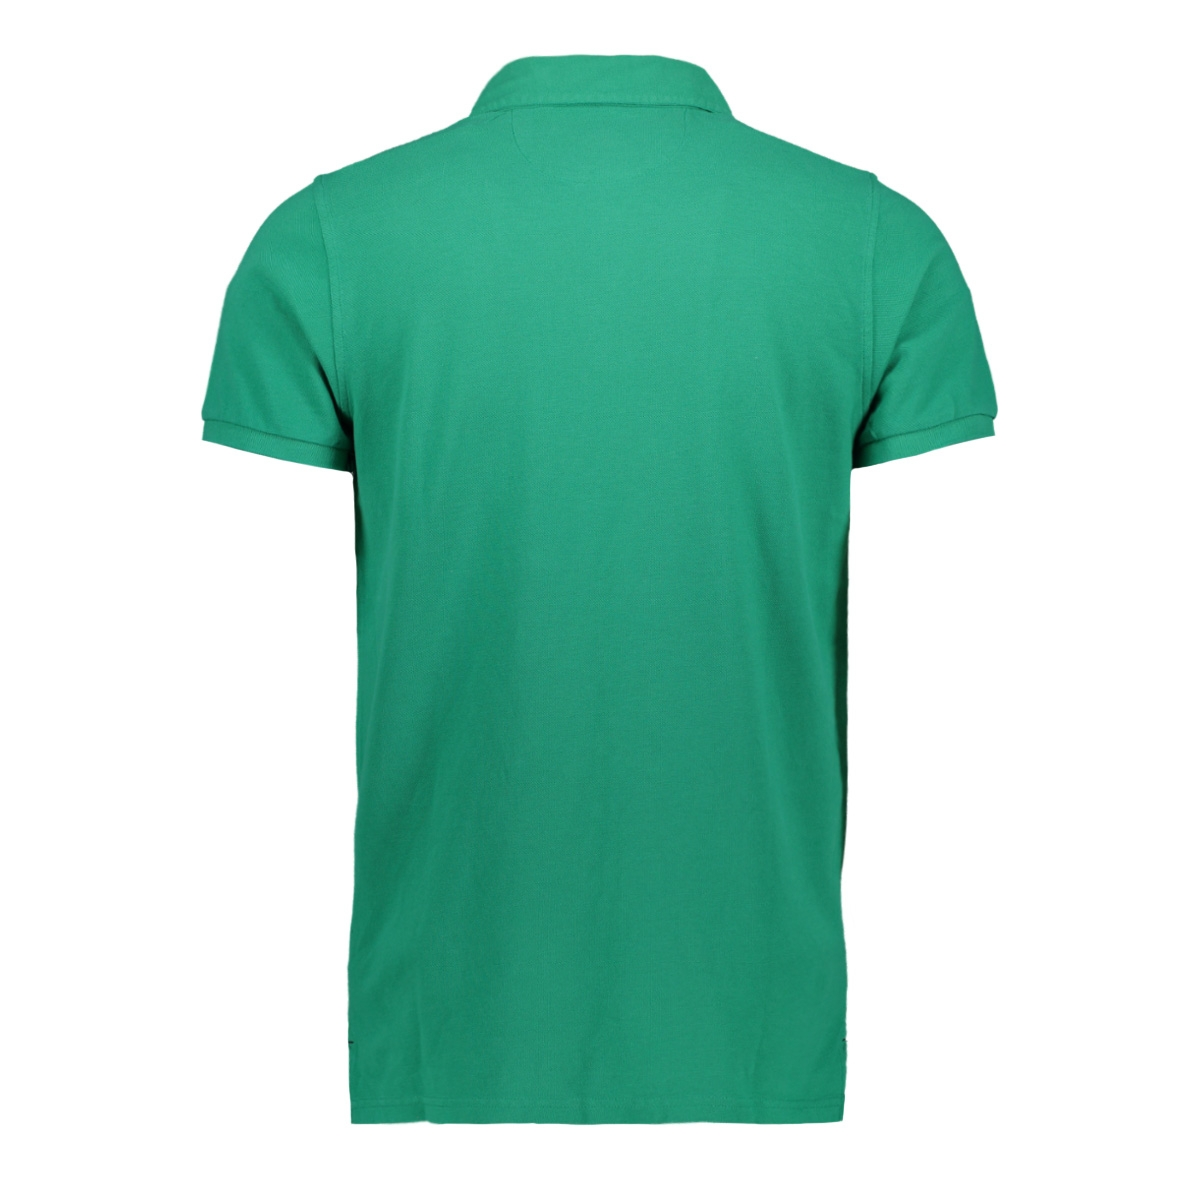 waiapu 20cn150 nza polo 493 new green